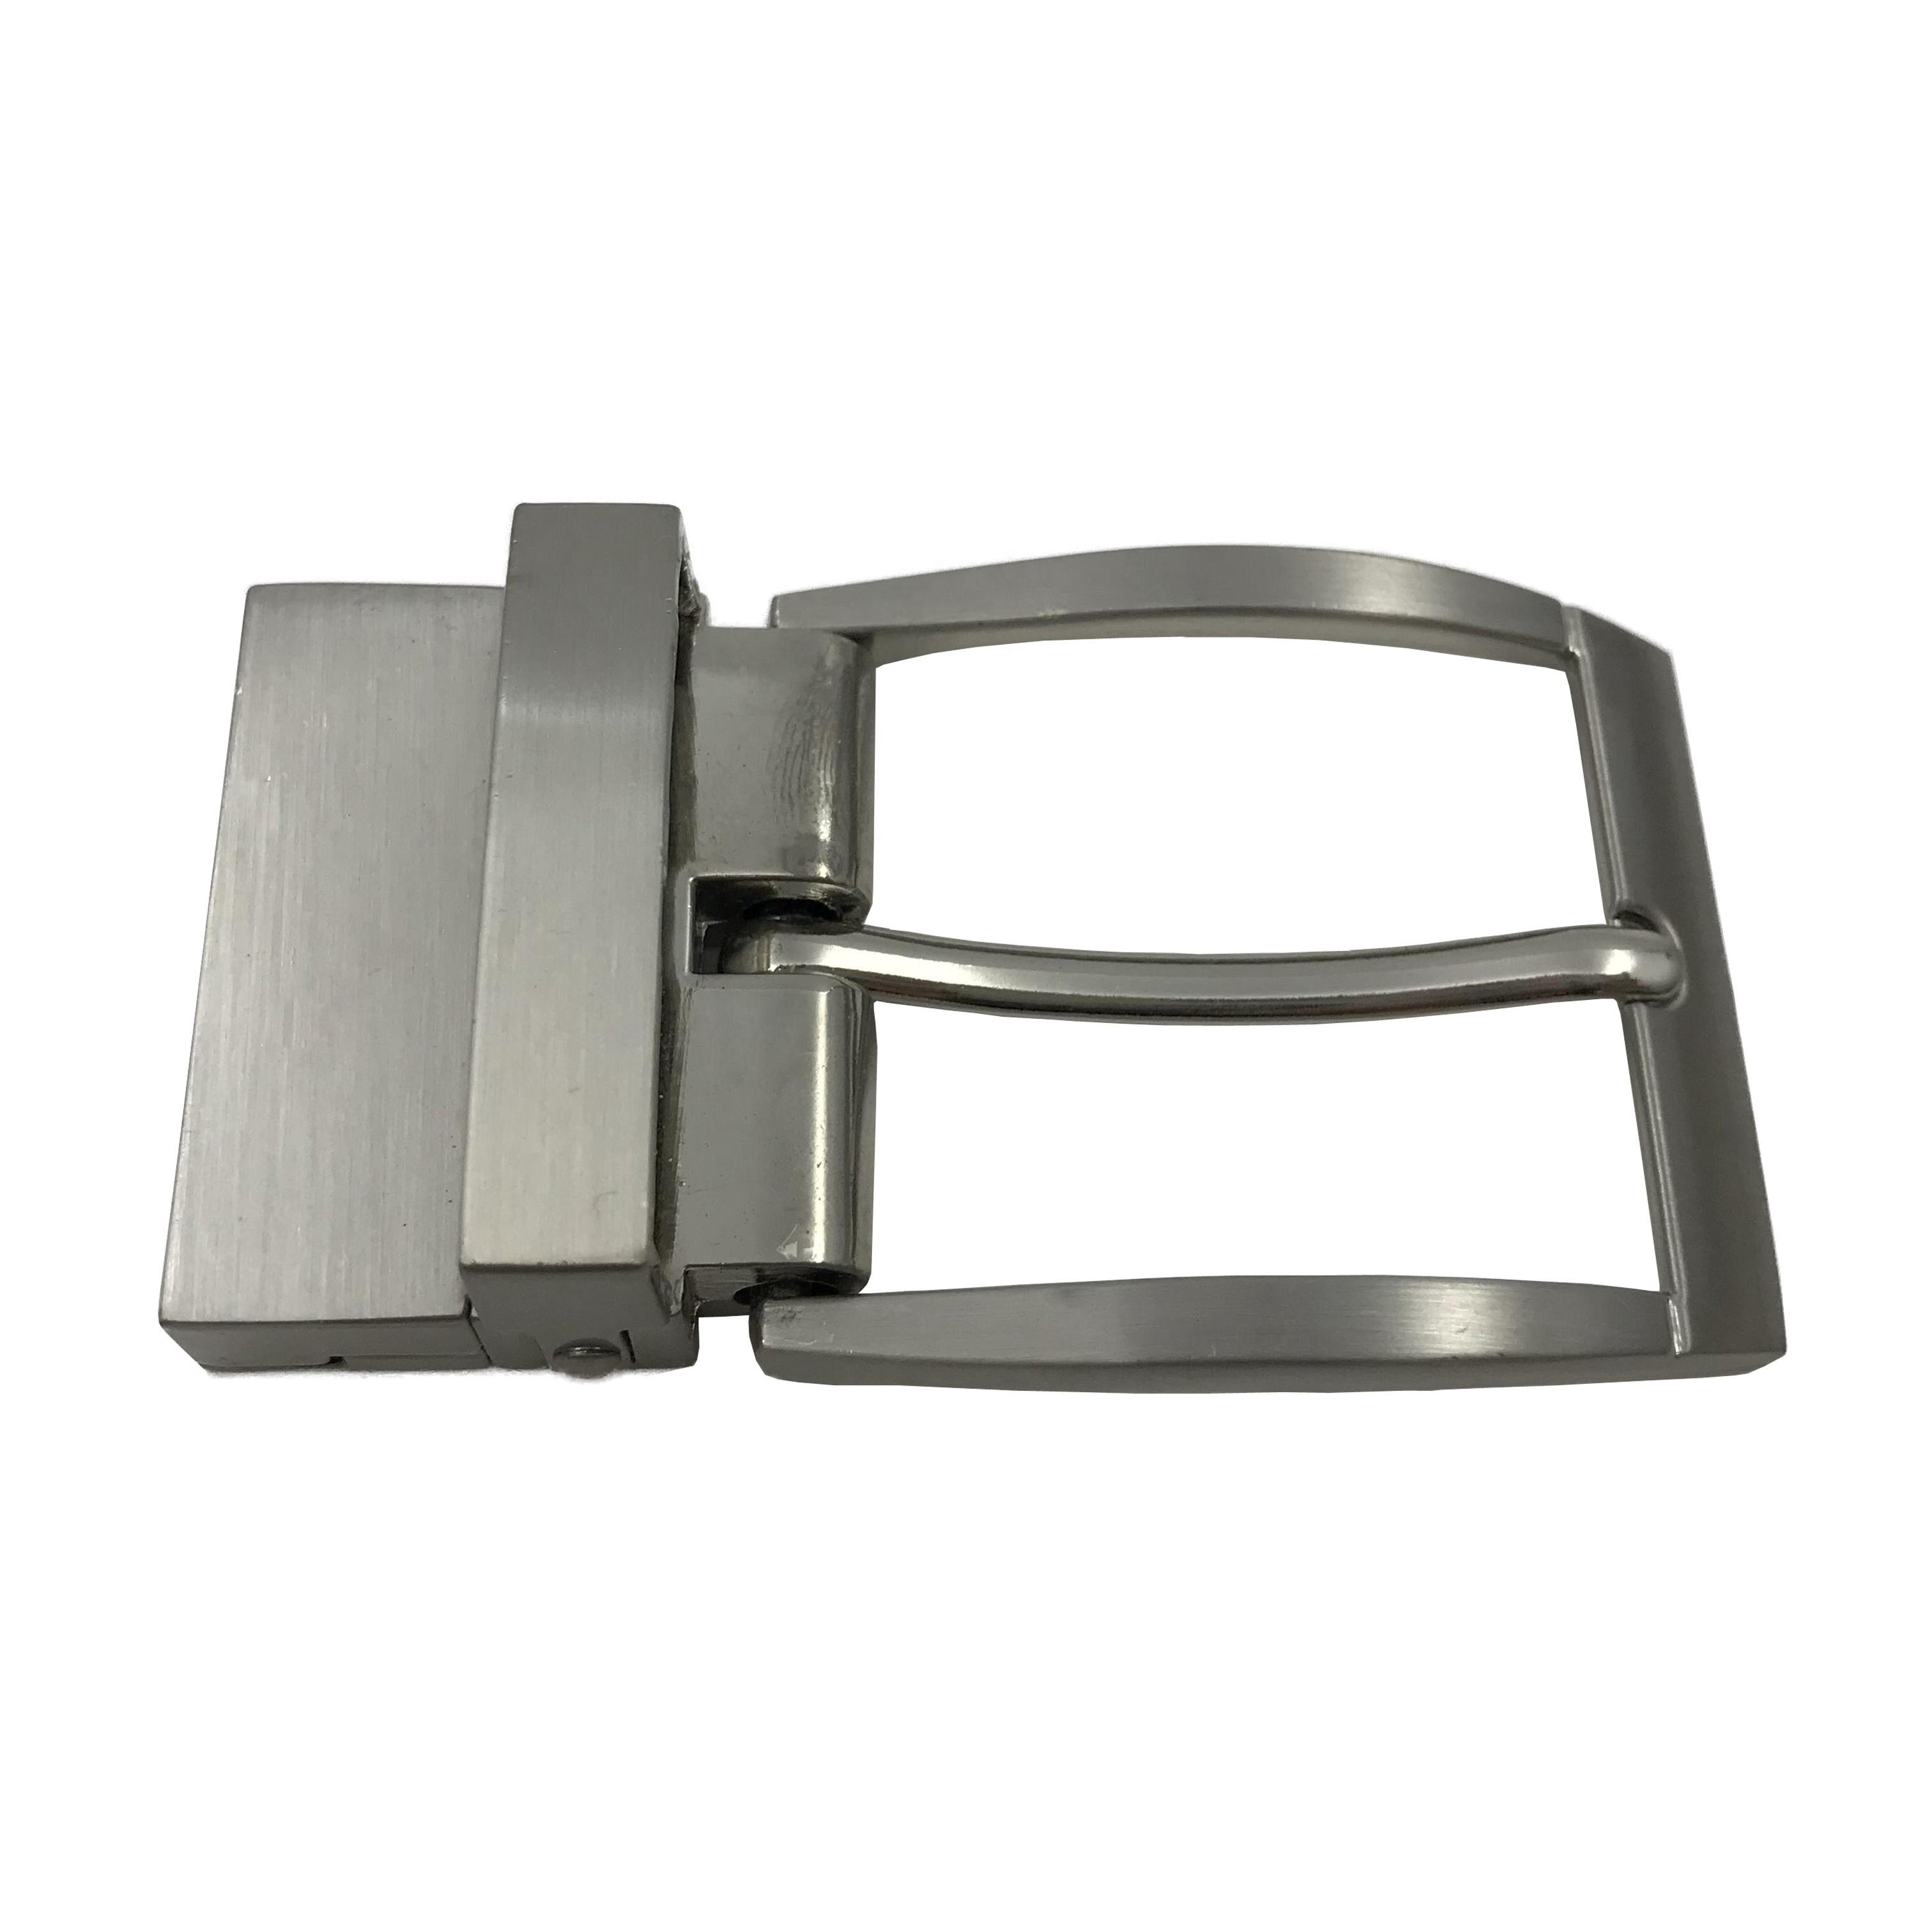 Custom-made zinc alloy reversible brushed nickle color pin clamp belt clip buckle metal seat belt buckle hardware supplier